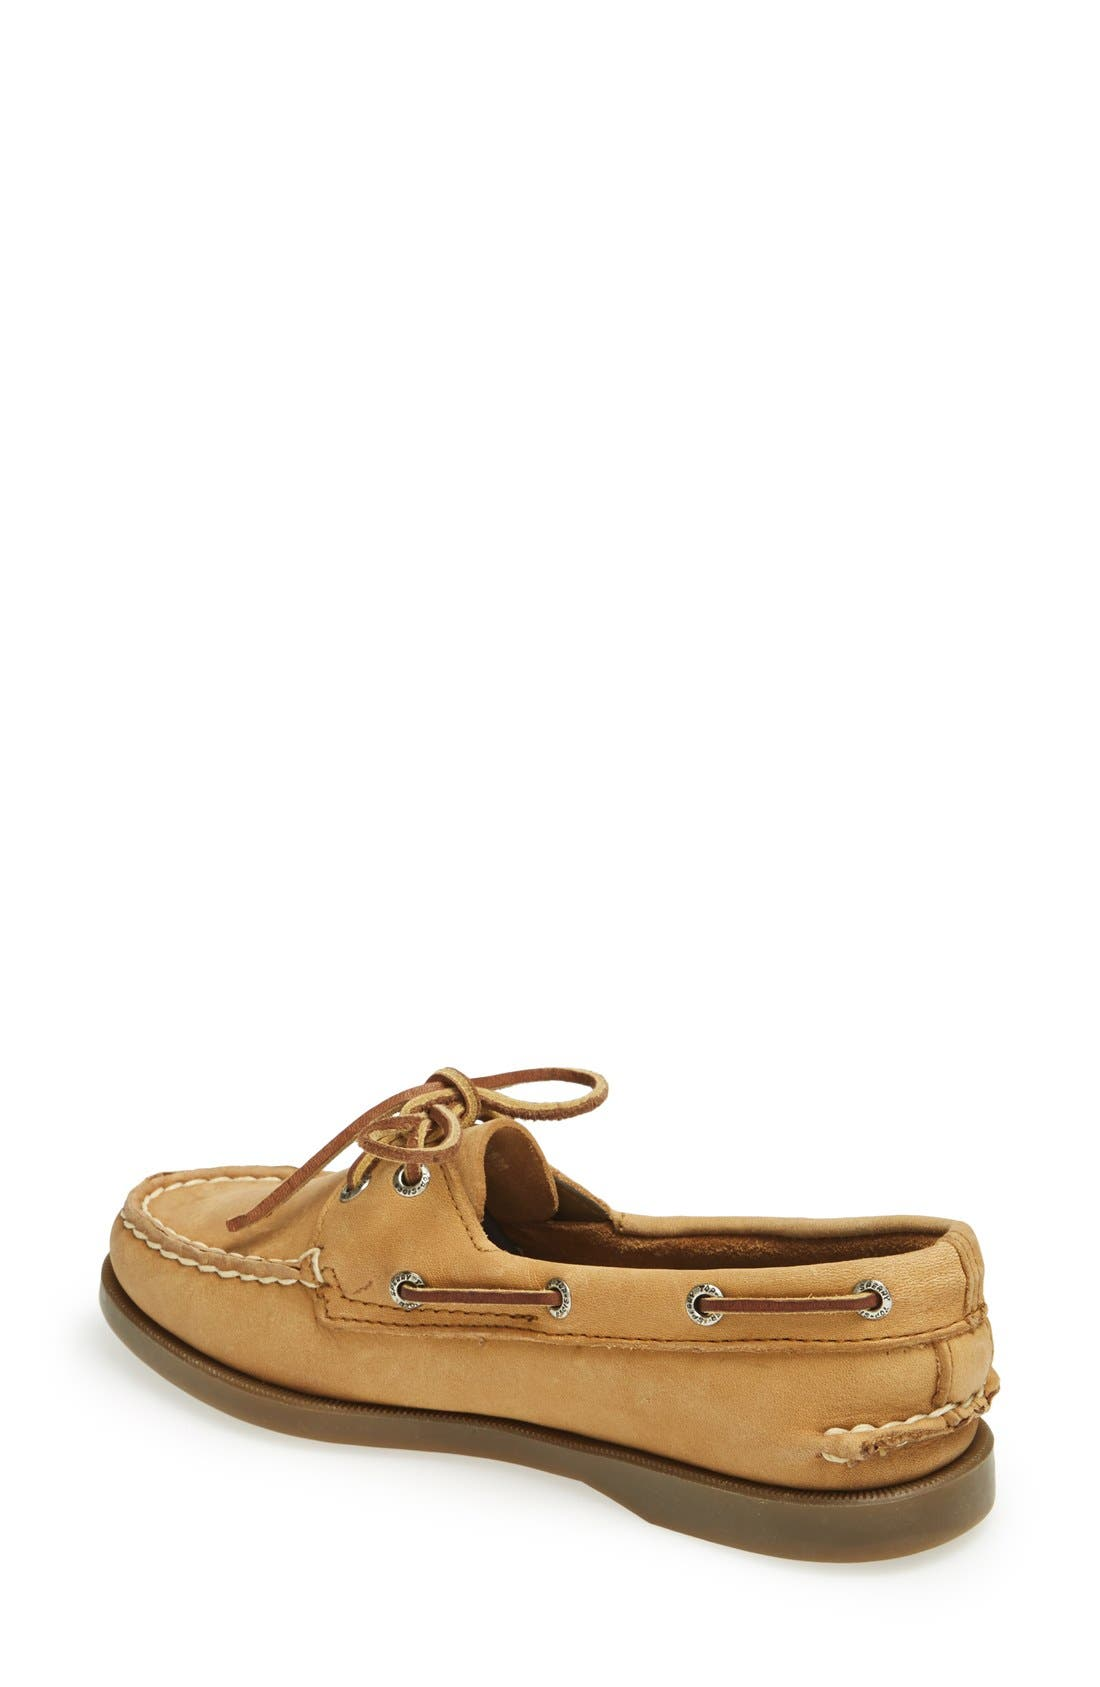 Alternate Image 3  - Sperry 'Authentic Original' Woven Boat Shoe